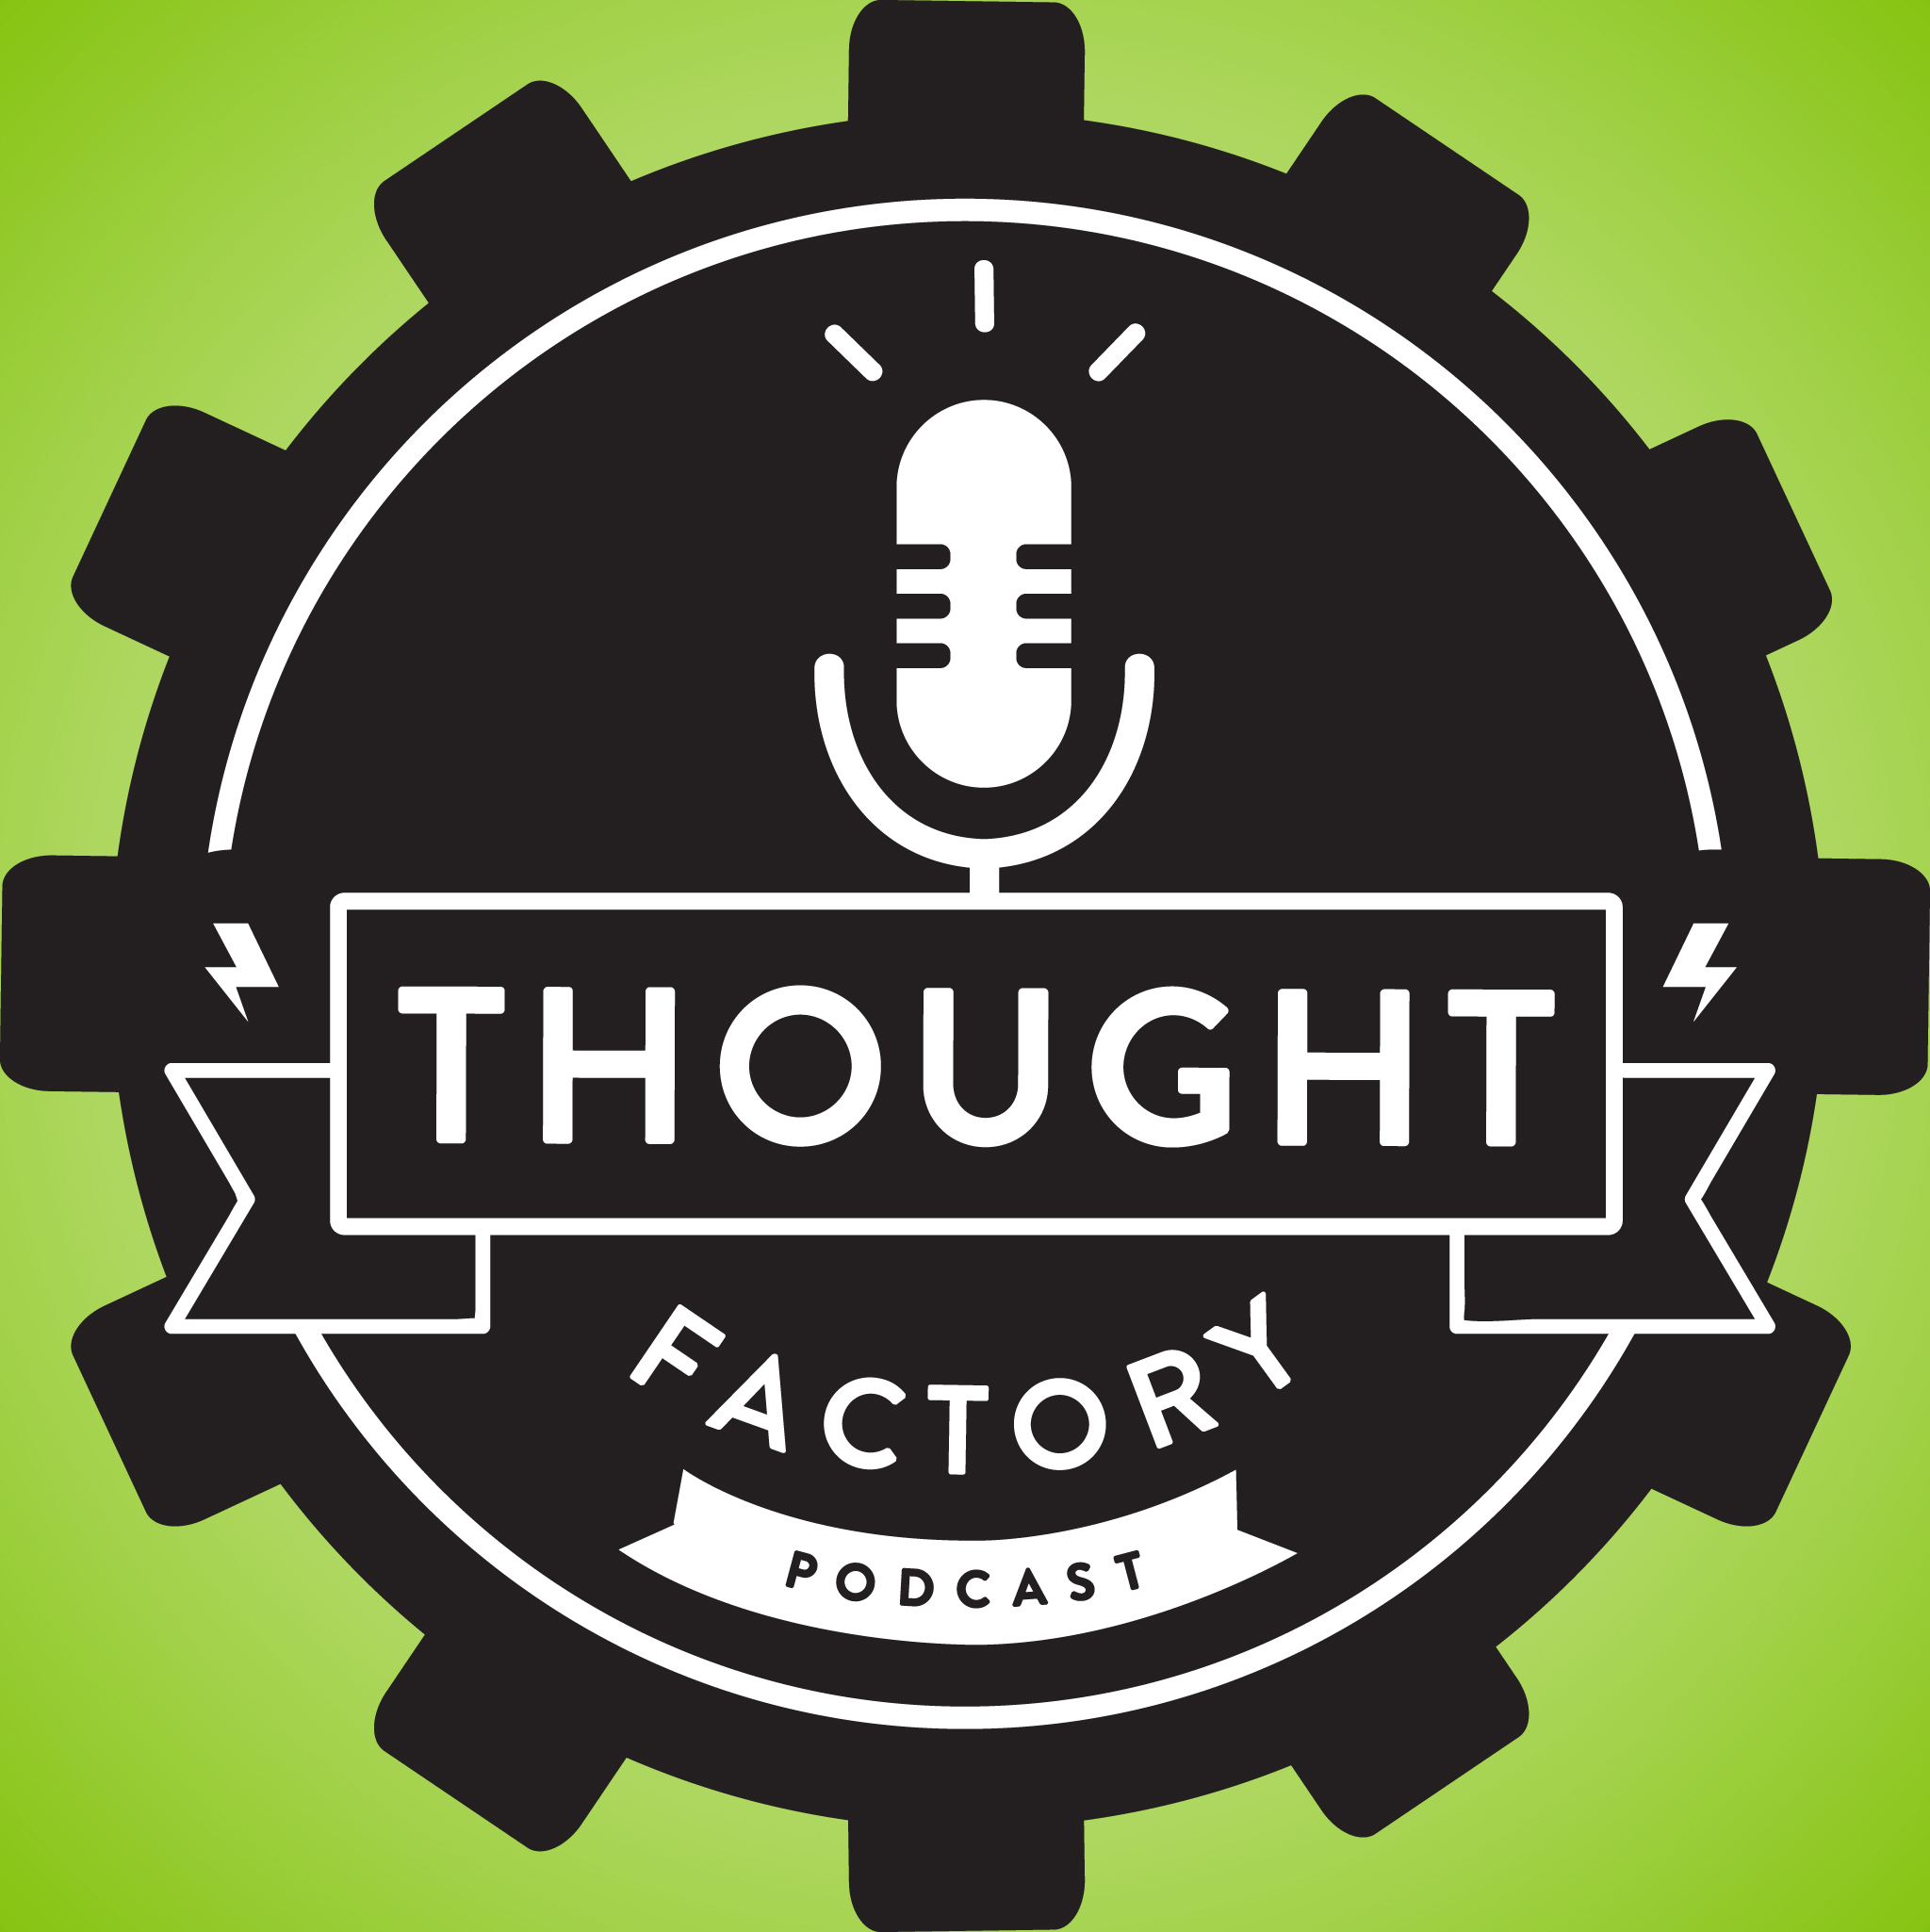 Thought Factory Podcast